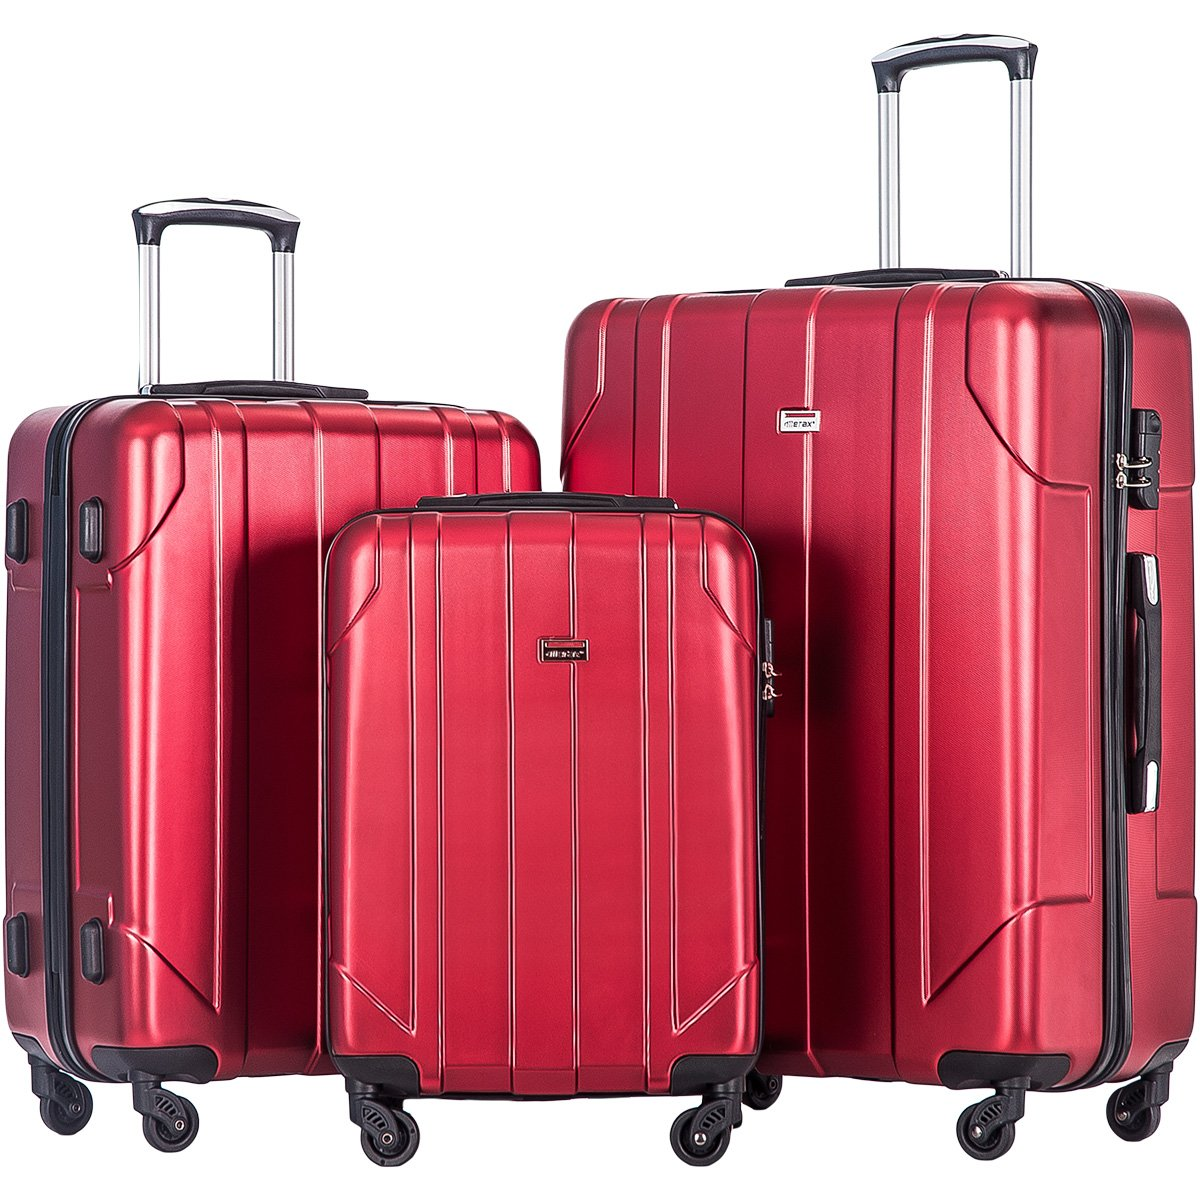 Merax 3 Piece P.E.T Luggage Set Eco-friendly Light Weight Travel Suitcase (Red) by Merax